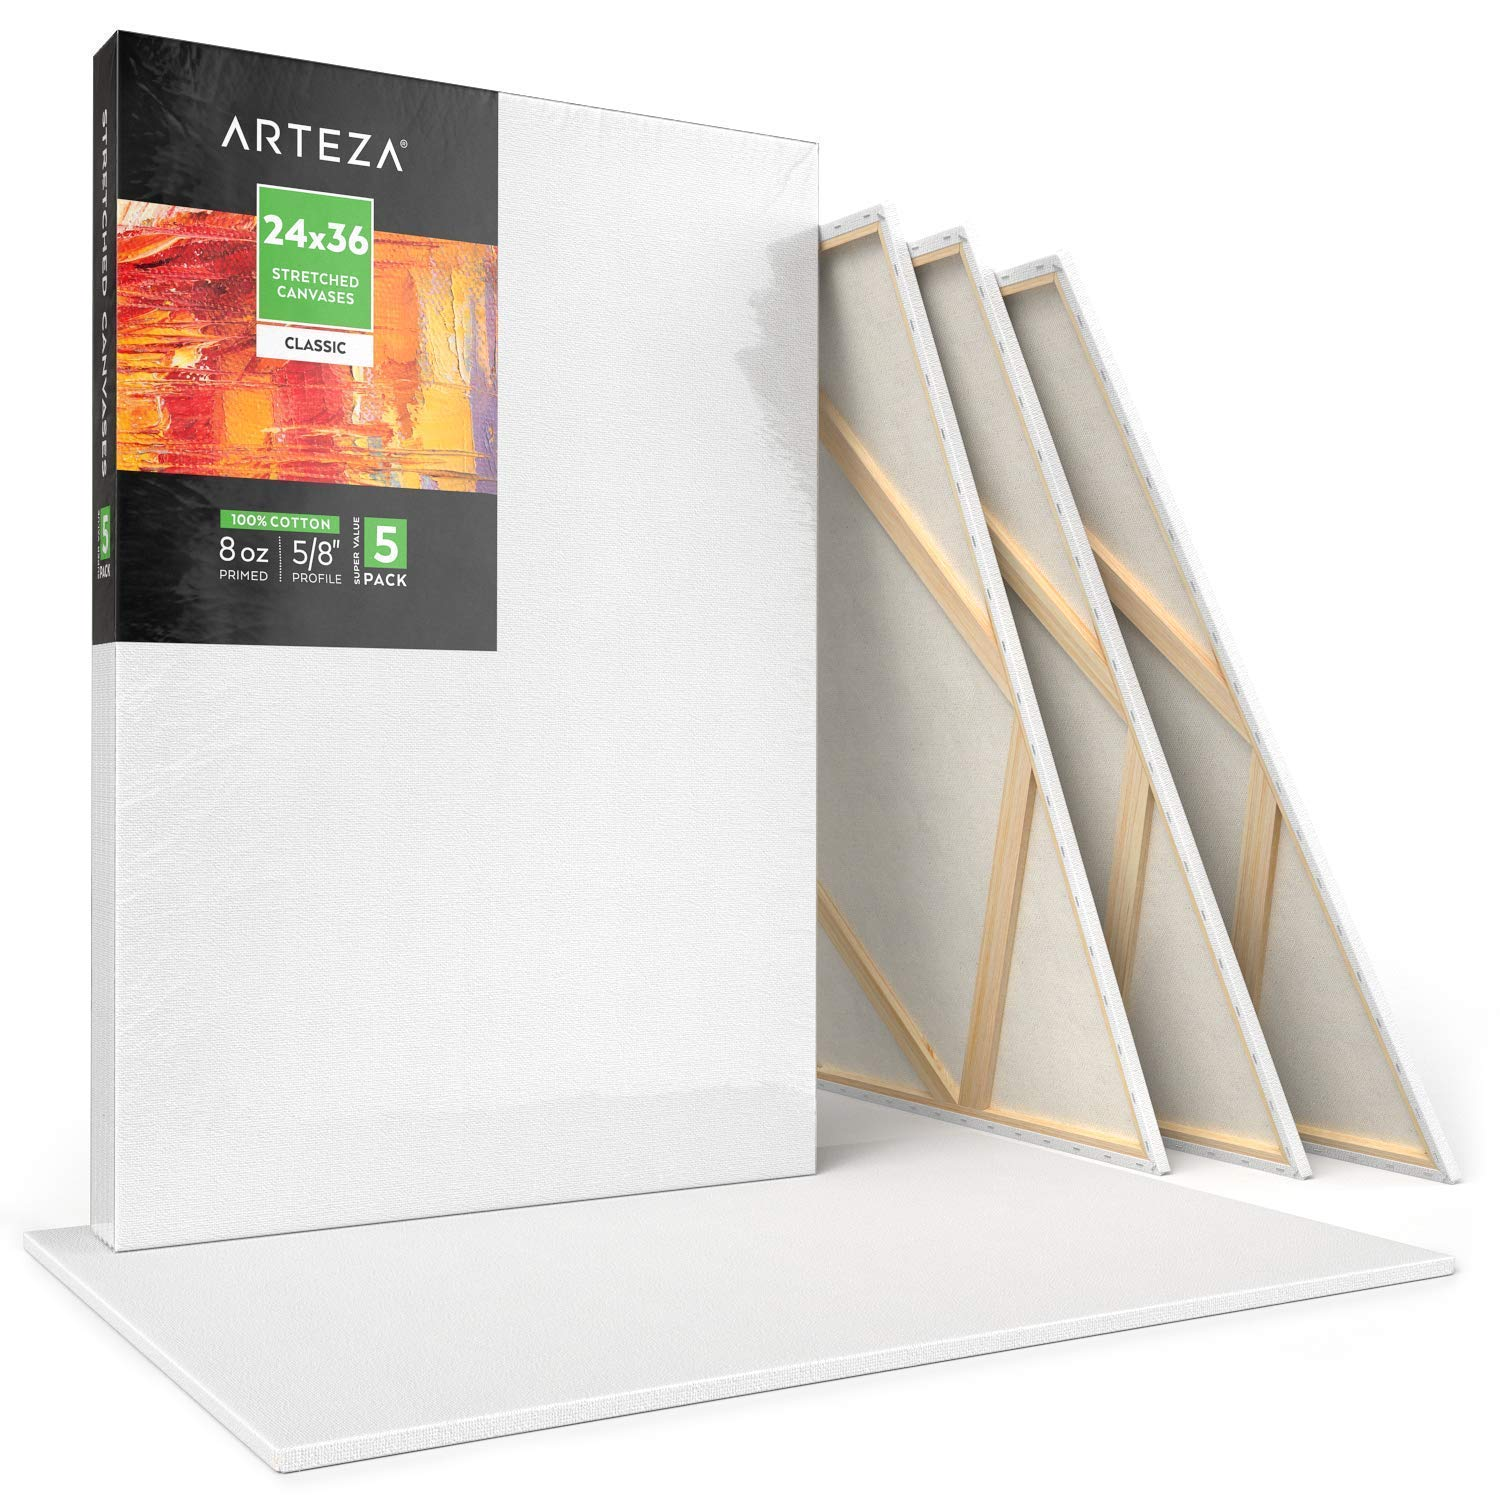 """Arteza 24x36"""" Stretched White Blank Canvas, Bulk Pack of 5, Primed, 100% Cotton for Painting, Acrylic Pouring, Oil Paint & Wet Art Media, Canvases for Professional Artist, Hobby Painters & Beginner by ARTEZA (Image #1)"""